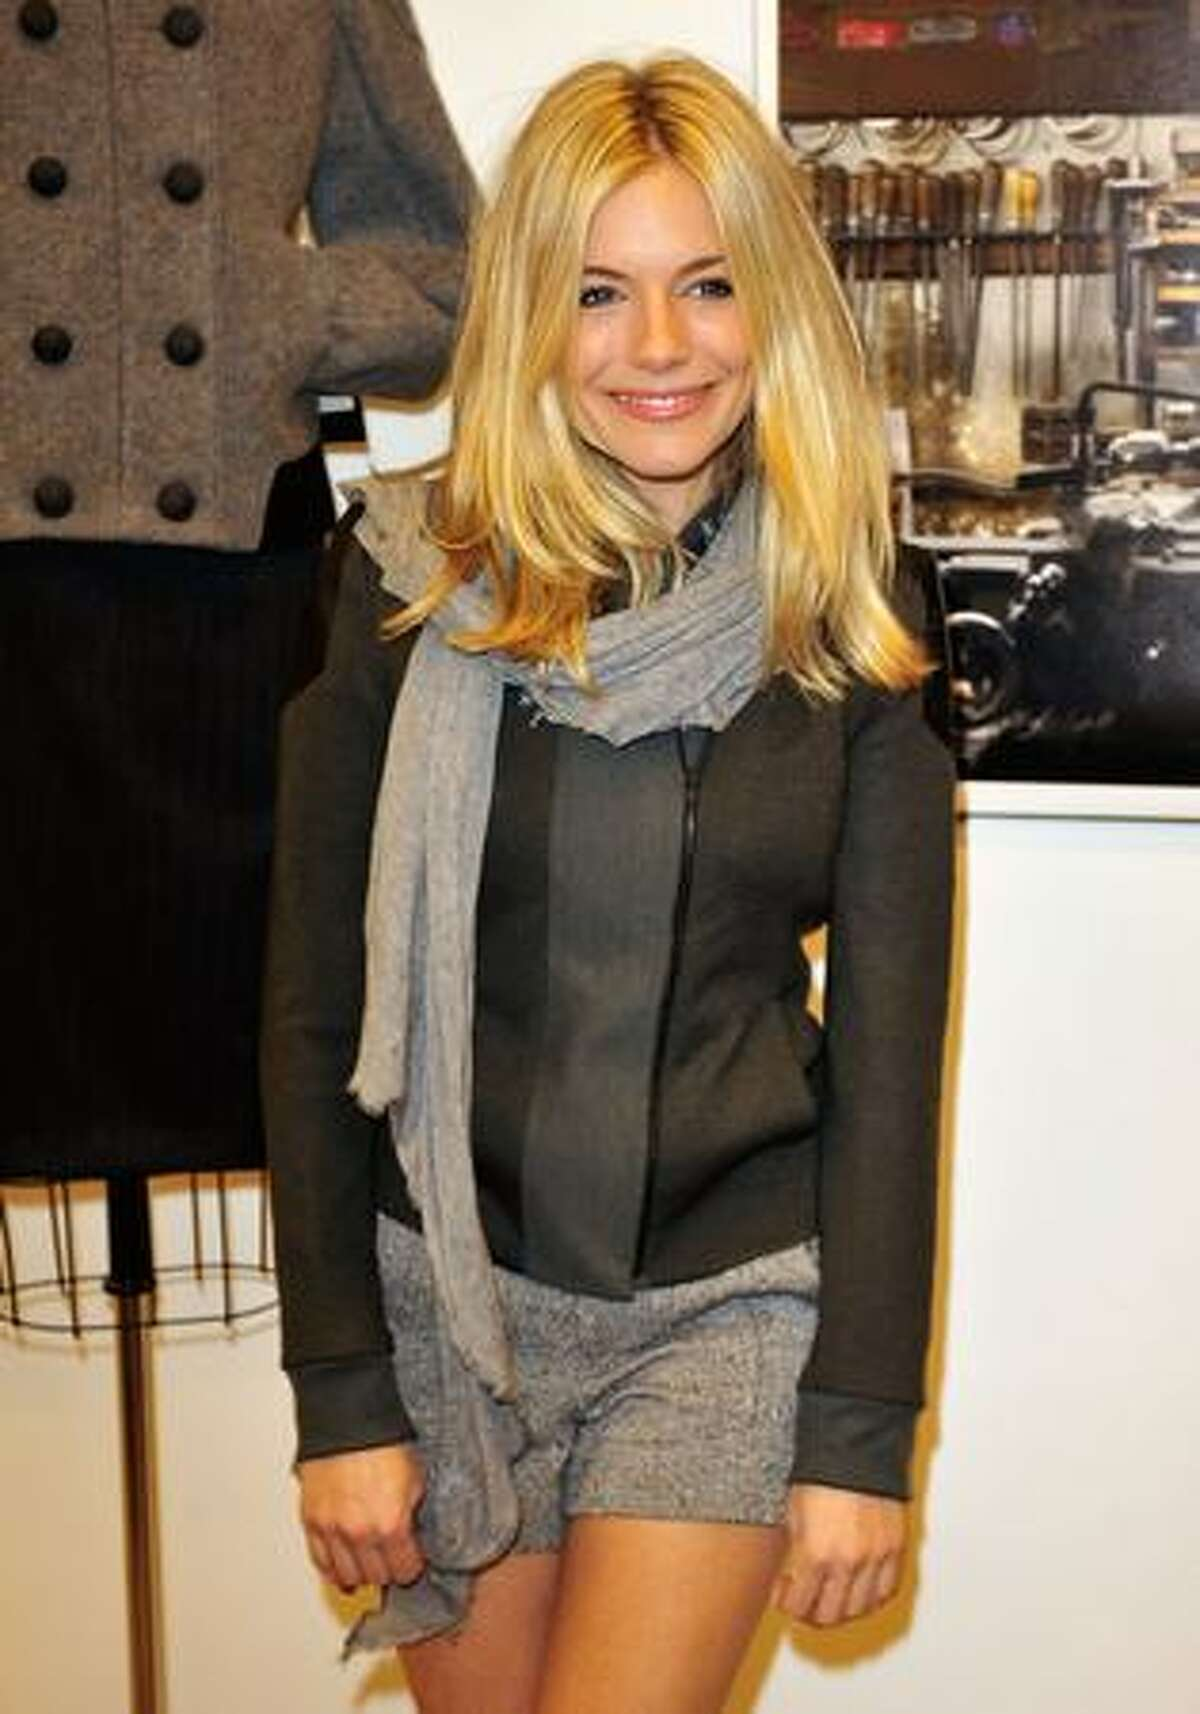 Actress Sienna Miller attends the Rag & Bone Soho store opening in New York City.